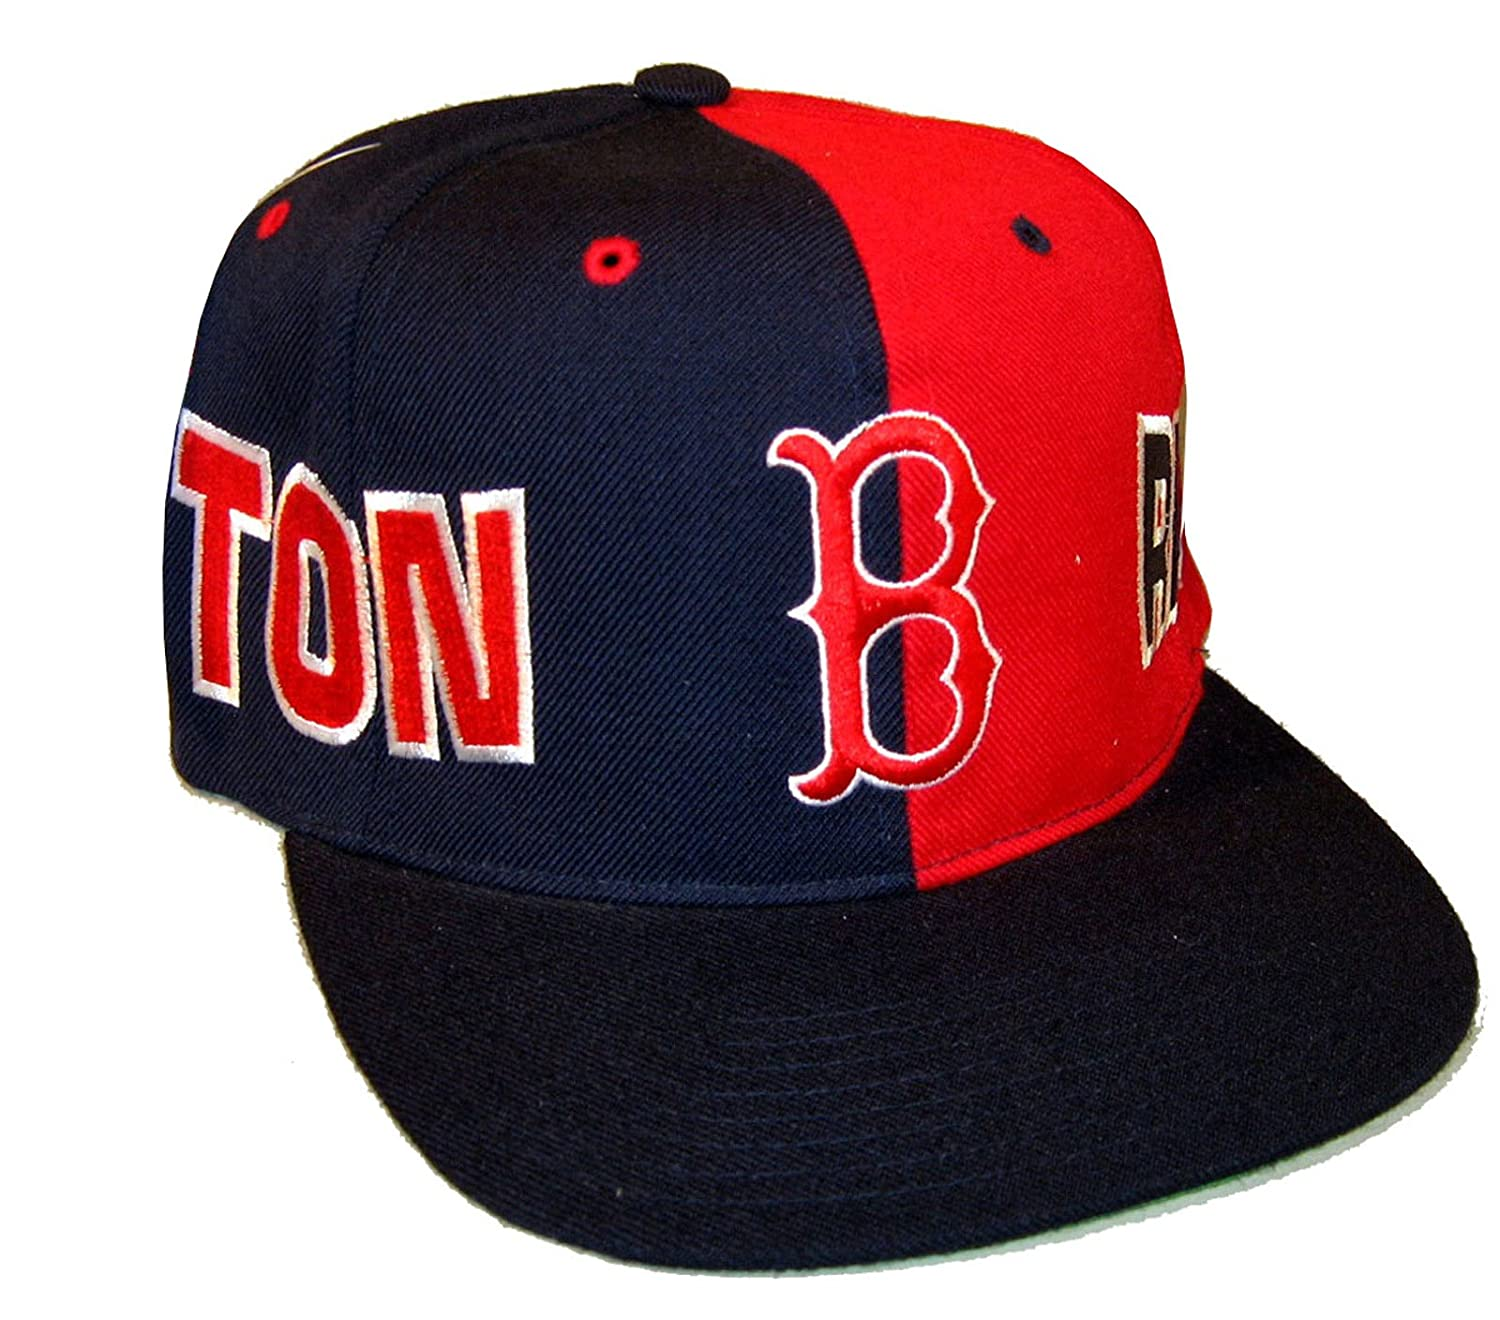 e6277a57 American Needle Men's Vintage Snapback Cap Boston Red Sox Adjustable ...